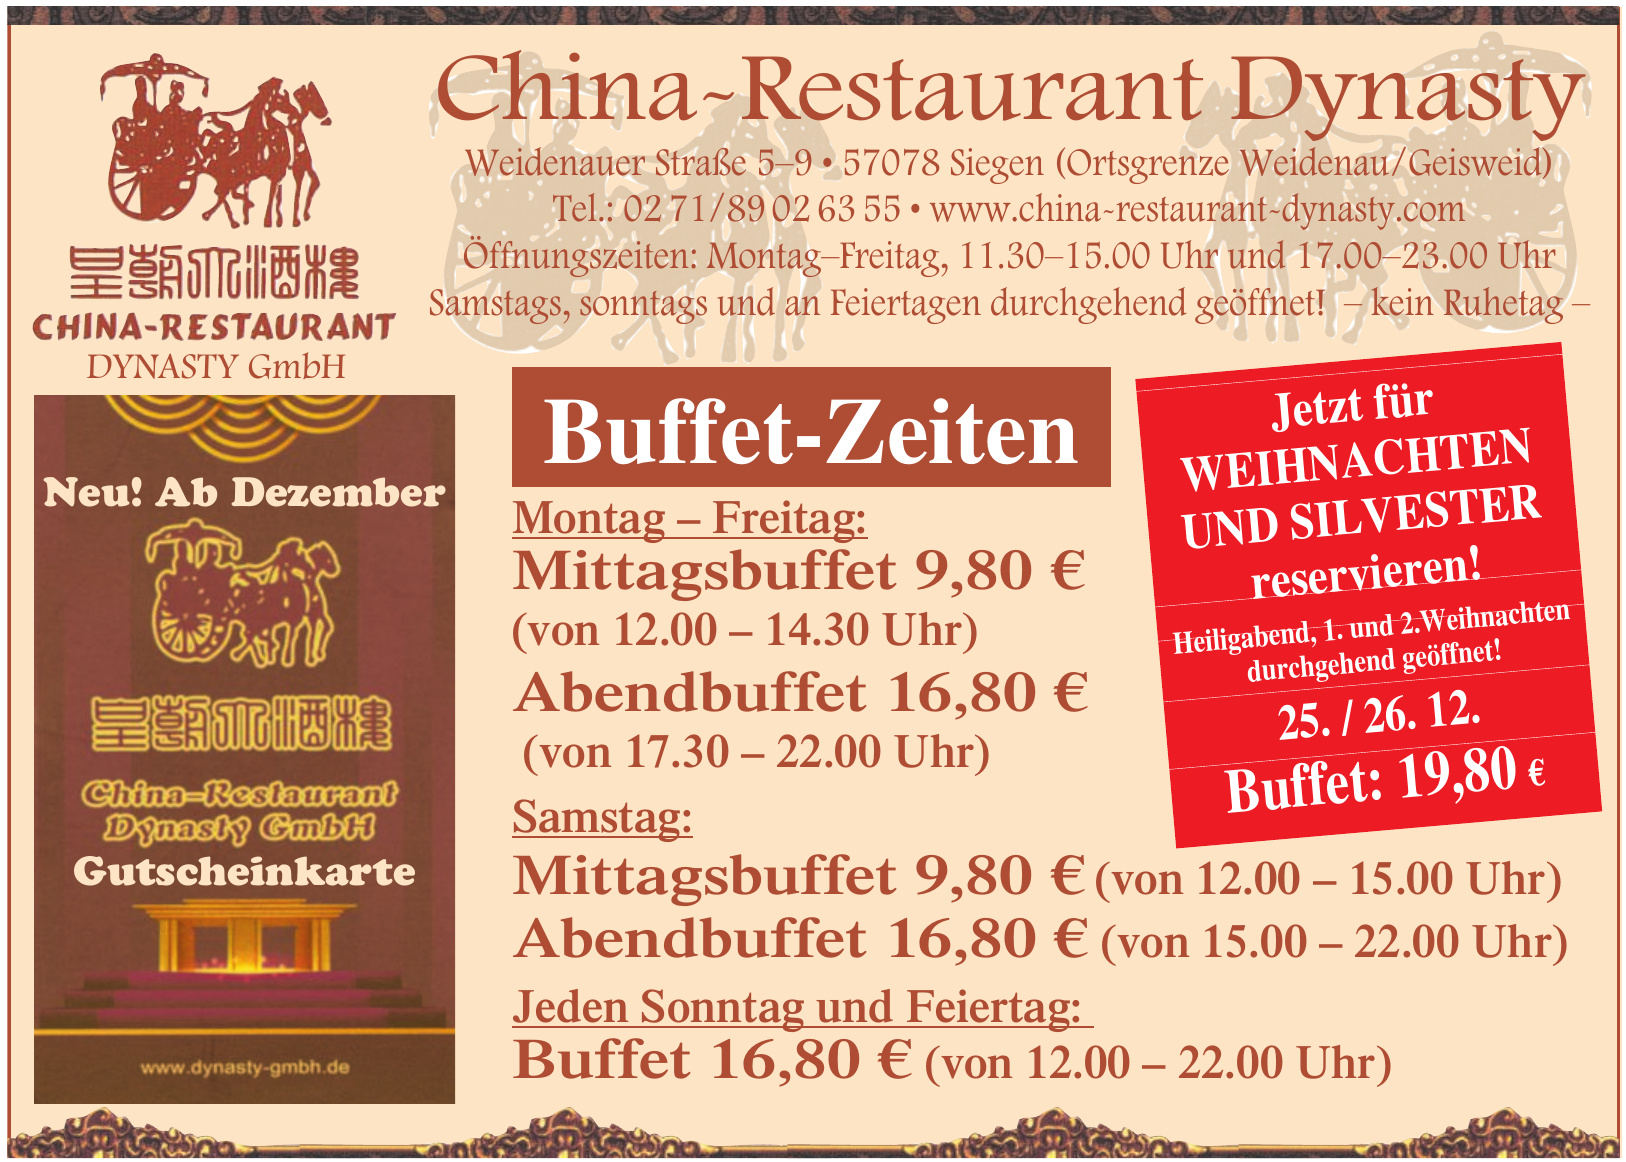 China Restaurant Dynasty